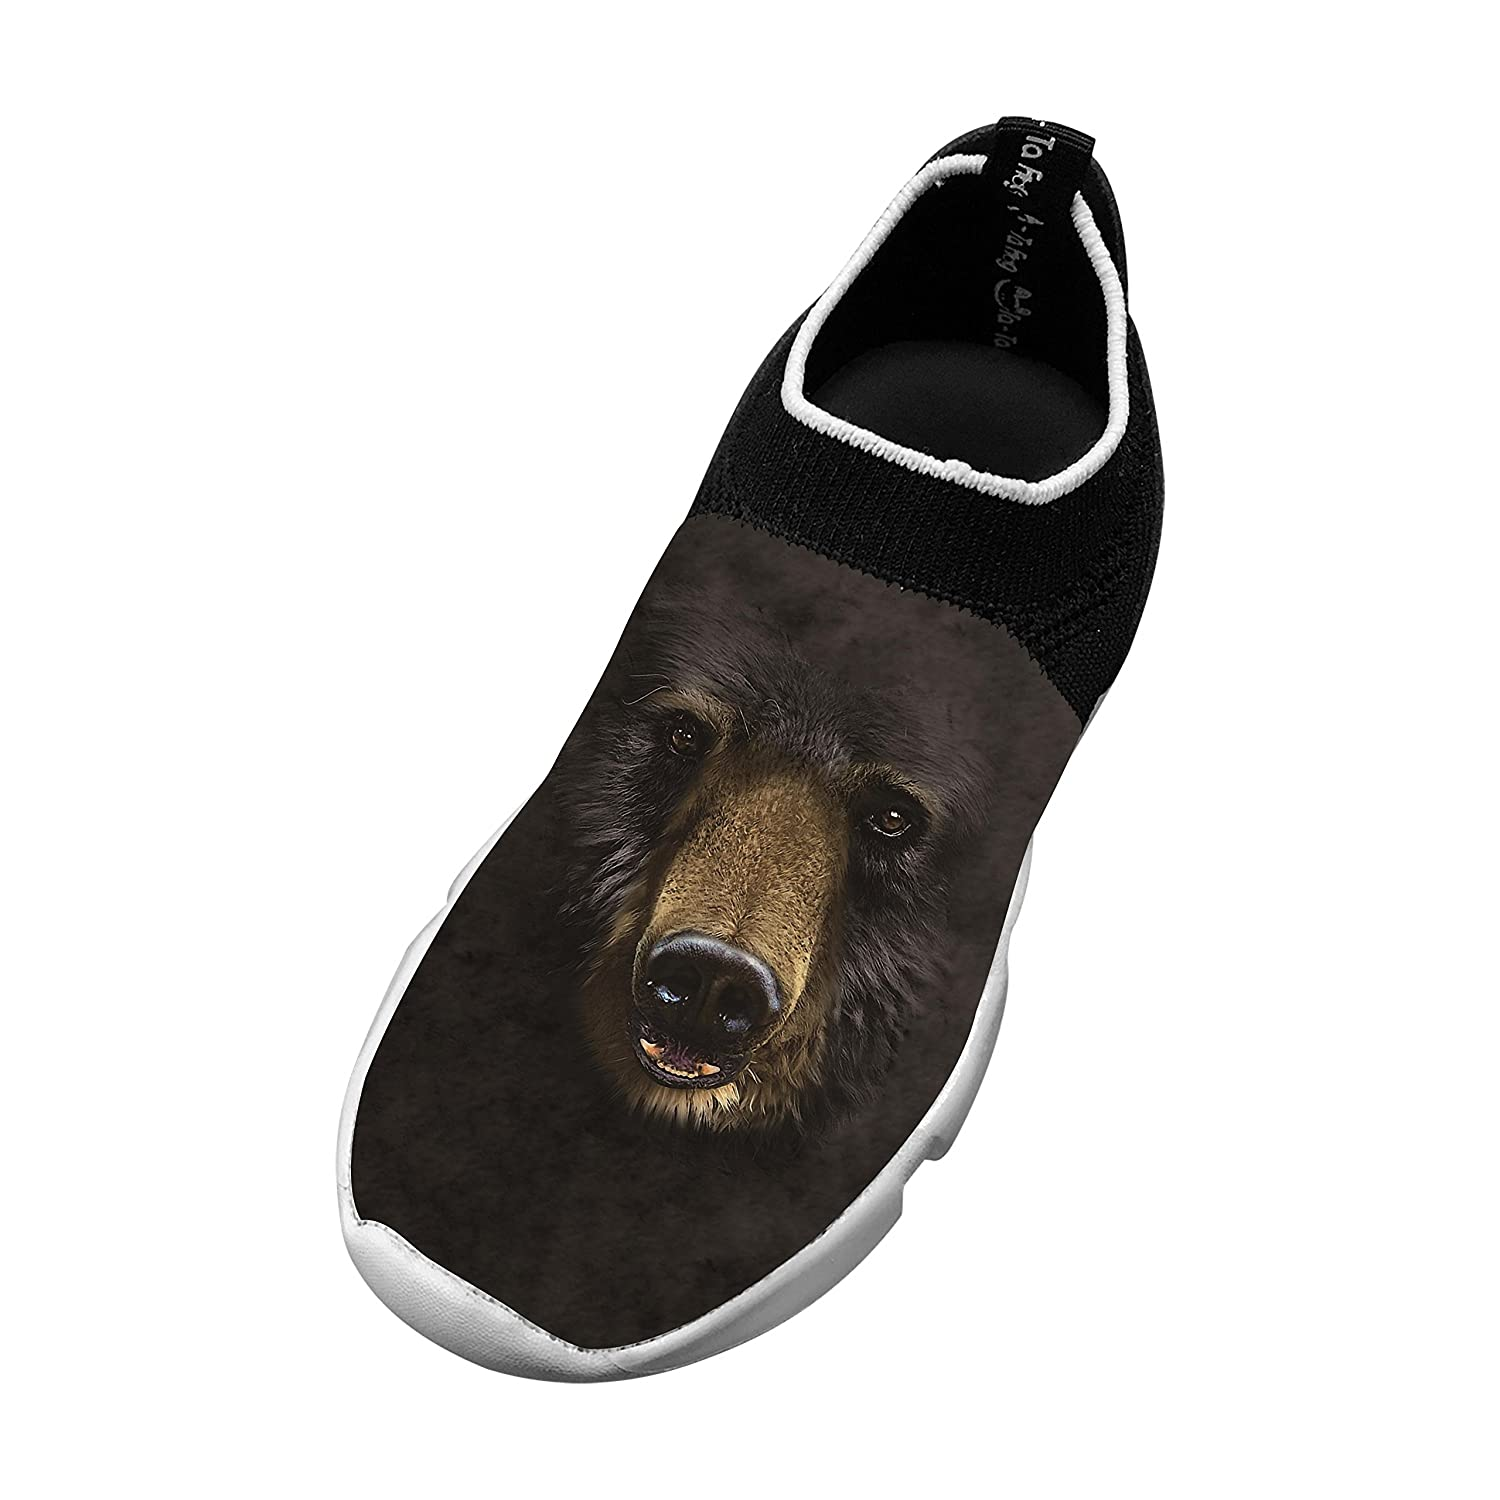 New Cool Flywire Knitting Sports Shoes 3D Original With Black Bear Face For Boy Girl